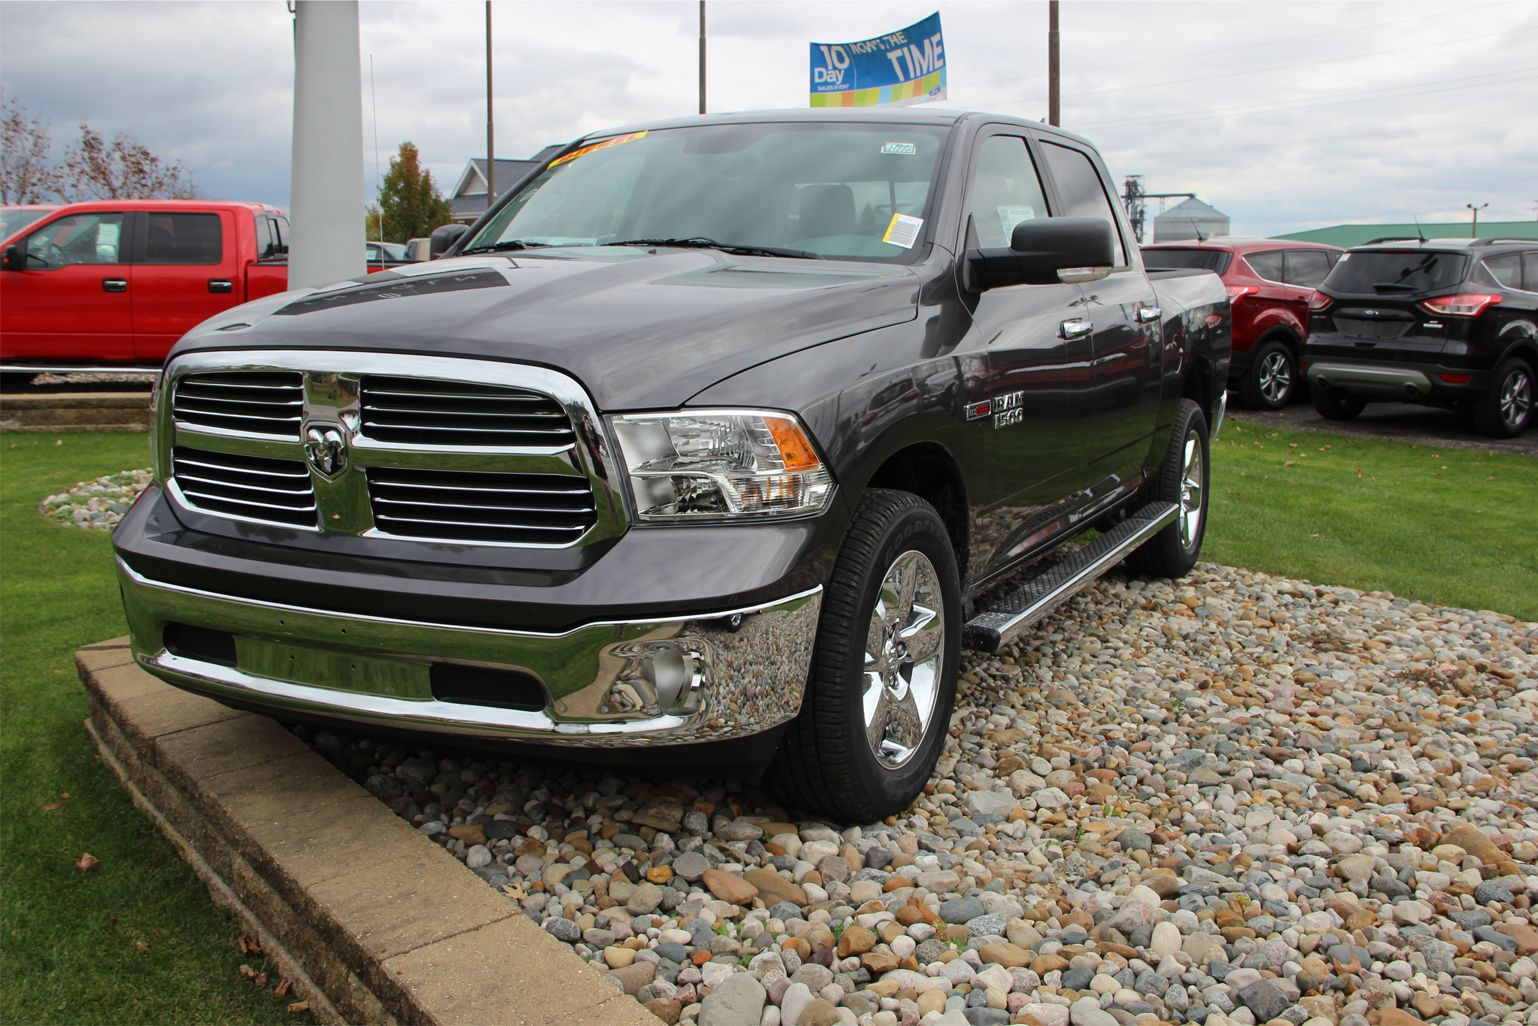 2014 ram 1500 slt crew cab 4x4 granite crystal met clear coat paint eco diesel